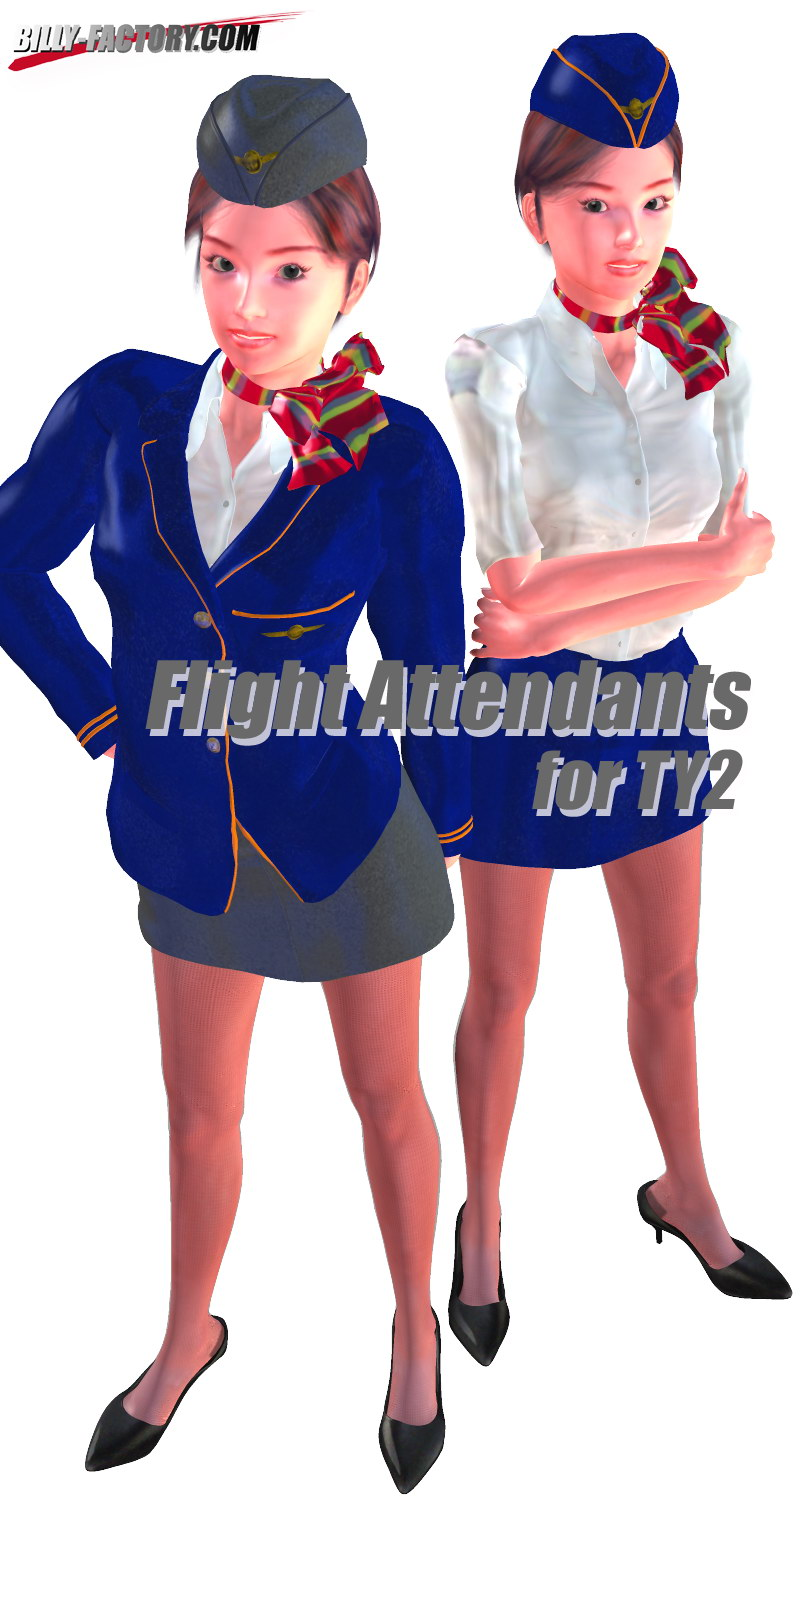 TY2 Flight Attendants by billy-t